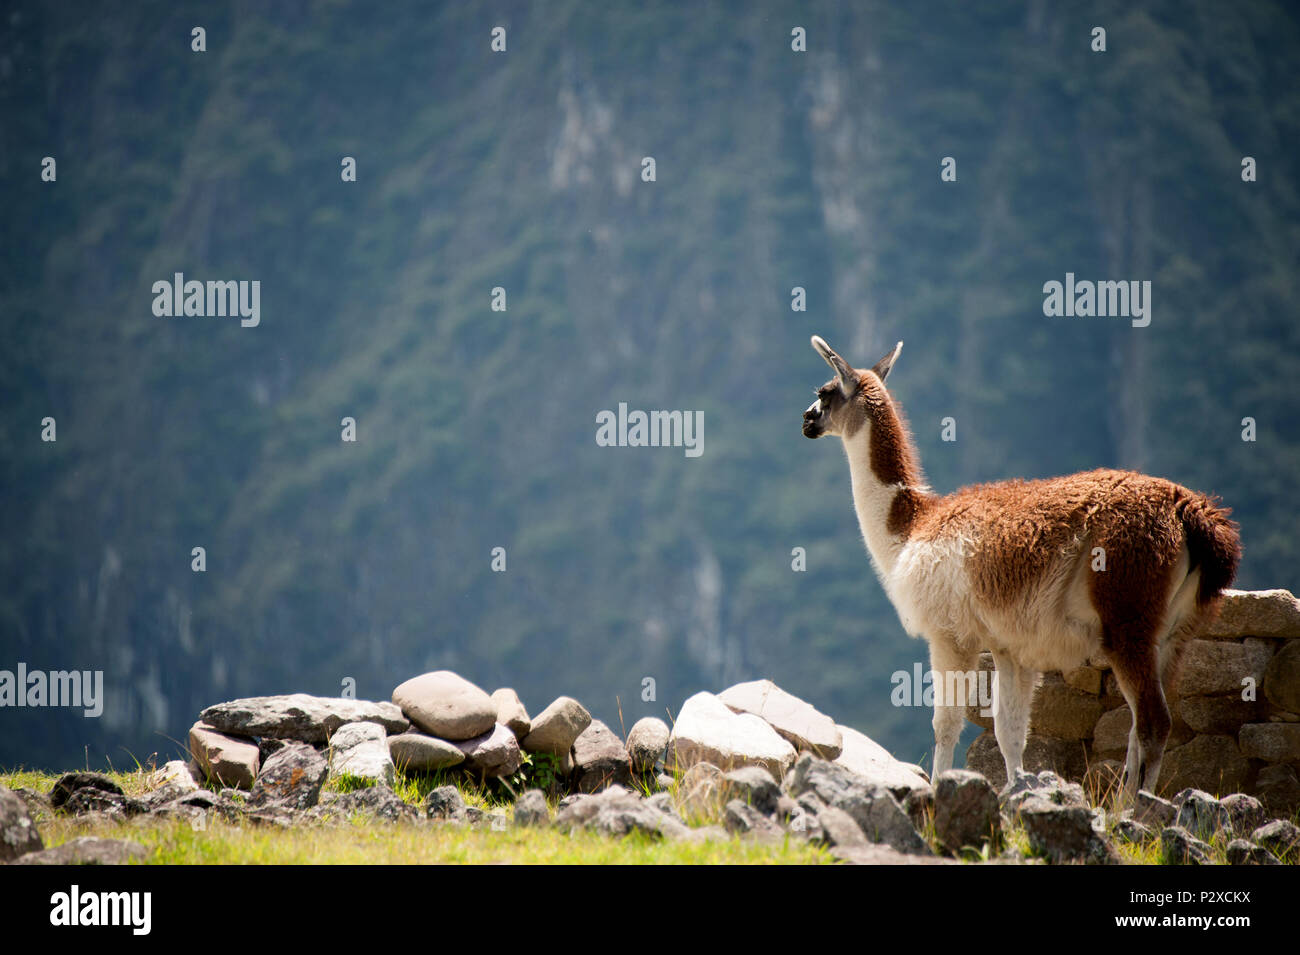 A Llama stands on the highest peak of Machu Picchu and looks across the valley - Stock Image